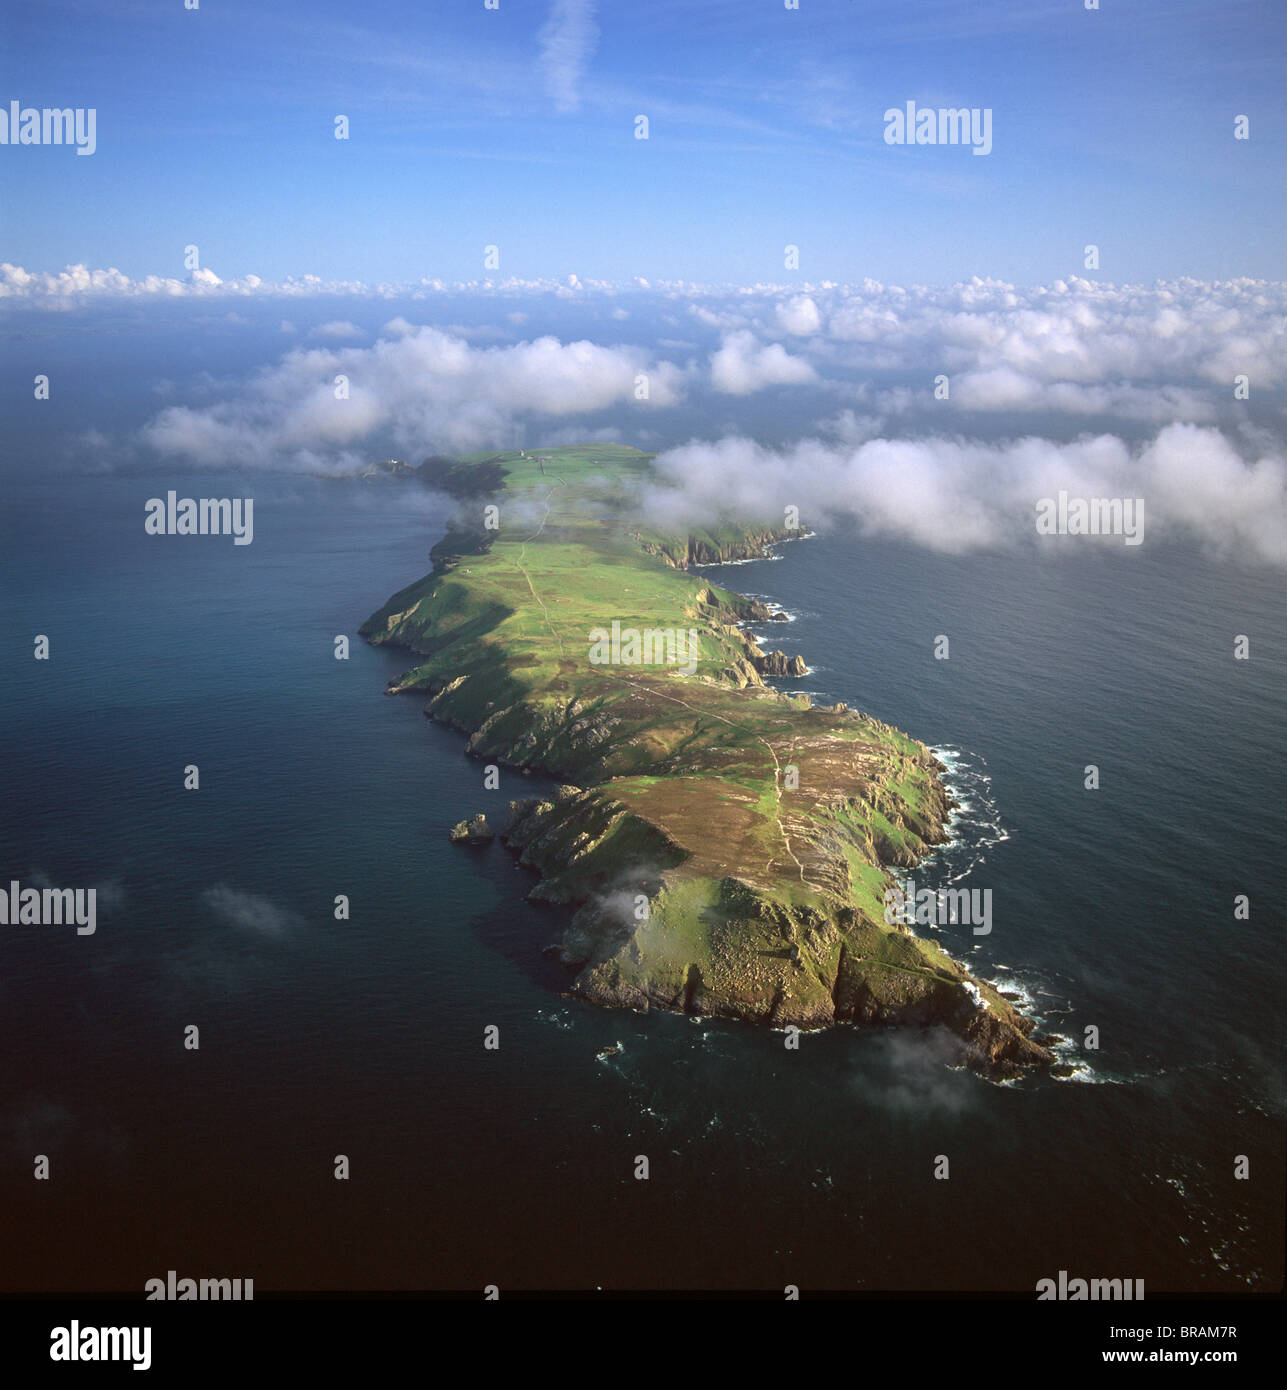 Aerial image of Lundy Island looking from north to south, Bristol Channel, Devon, England, United Kingdom, Europe - Stock Image